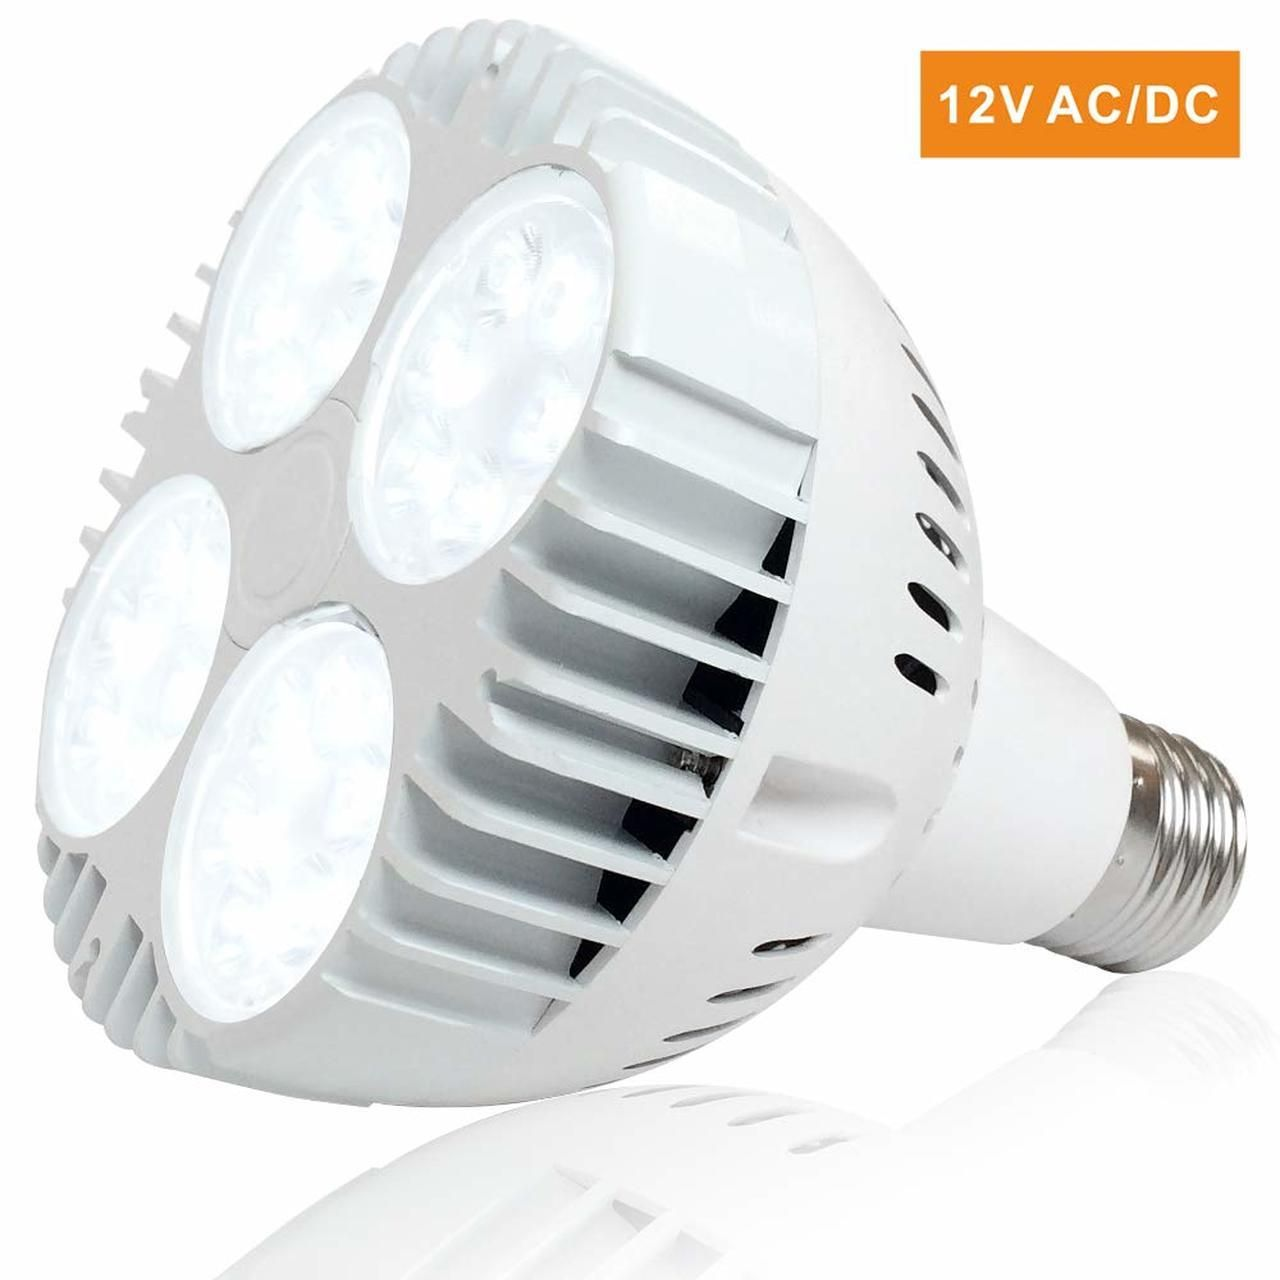 12v 35w Led Swimming Pool Light Bulb 3600lm 6000k Daylight White In 2020 Pool Light Swimming Pool Lights Led Pool Lighting